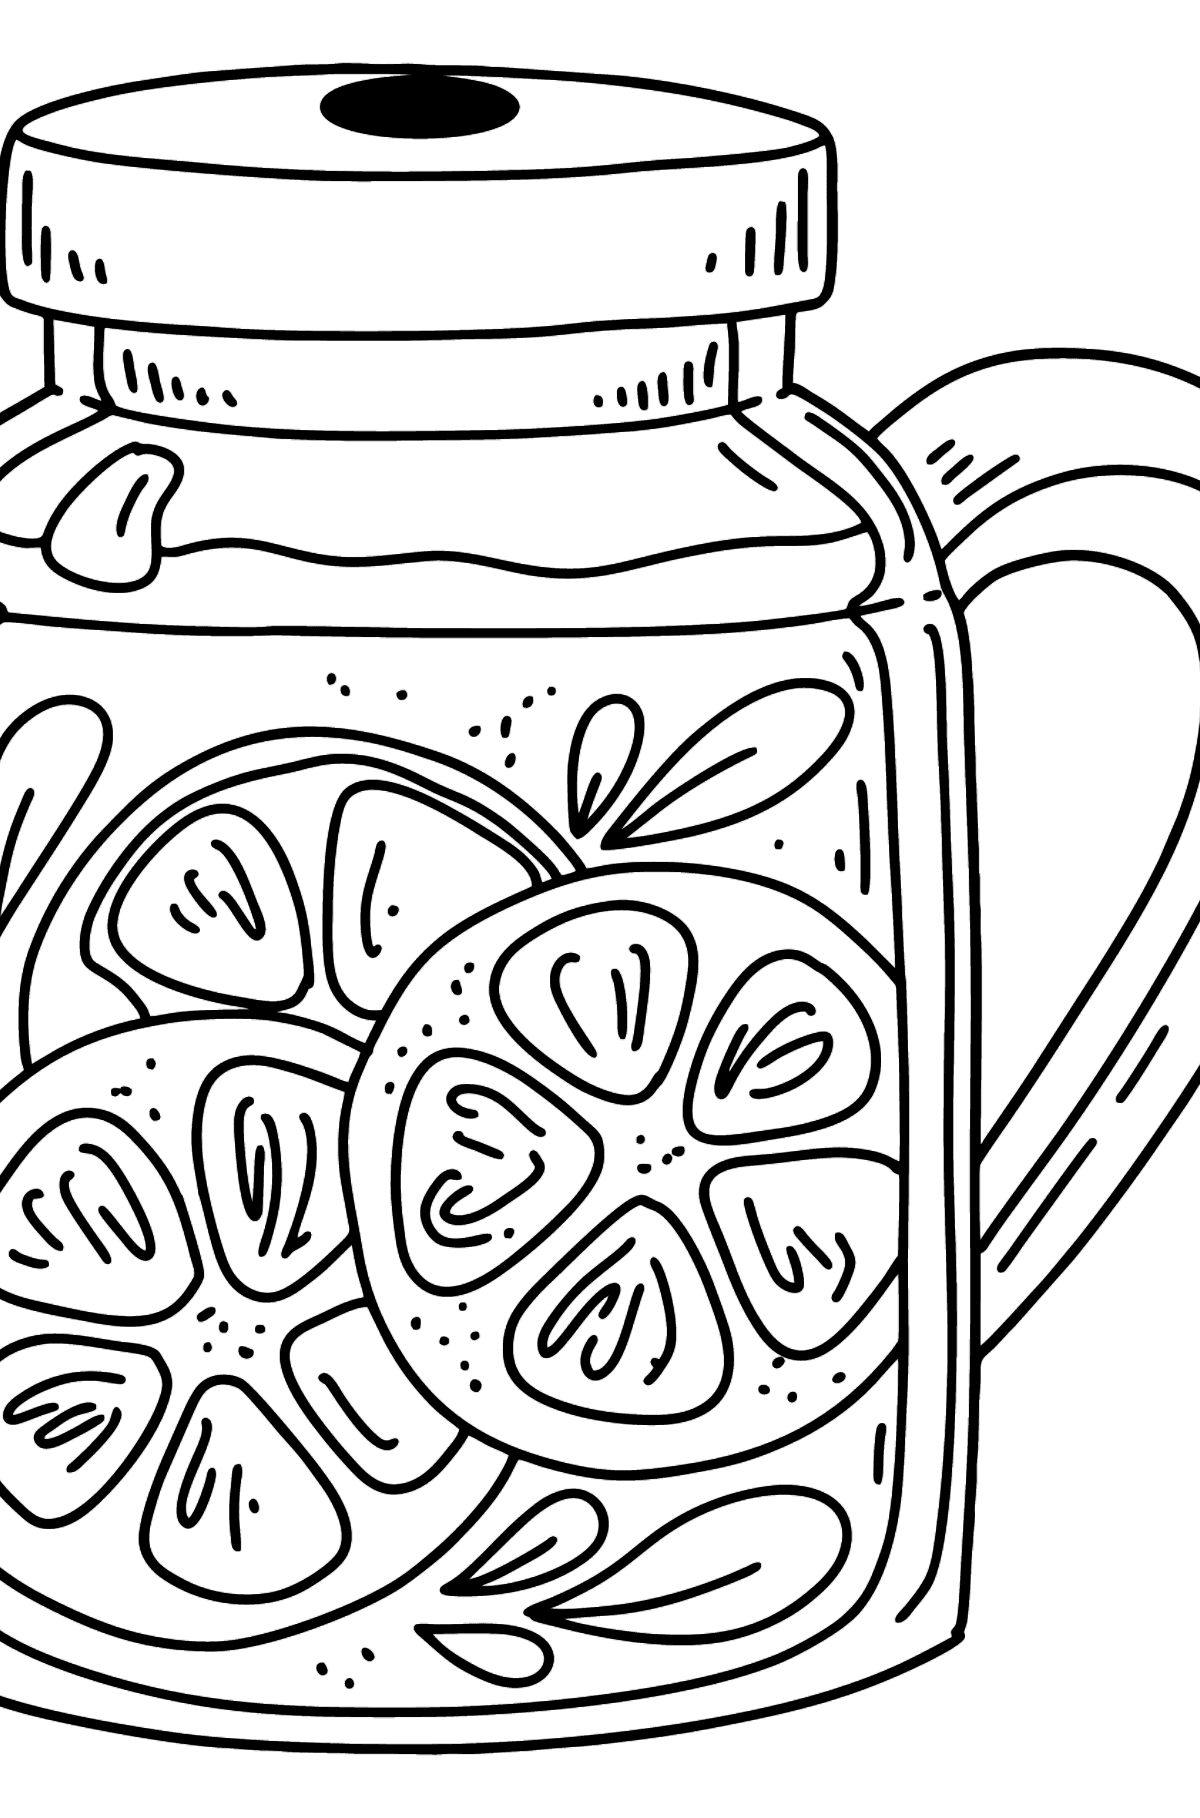 Delicious Lemonade coloring page - Coloring Pages for Kids